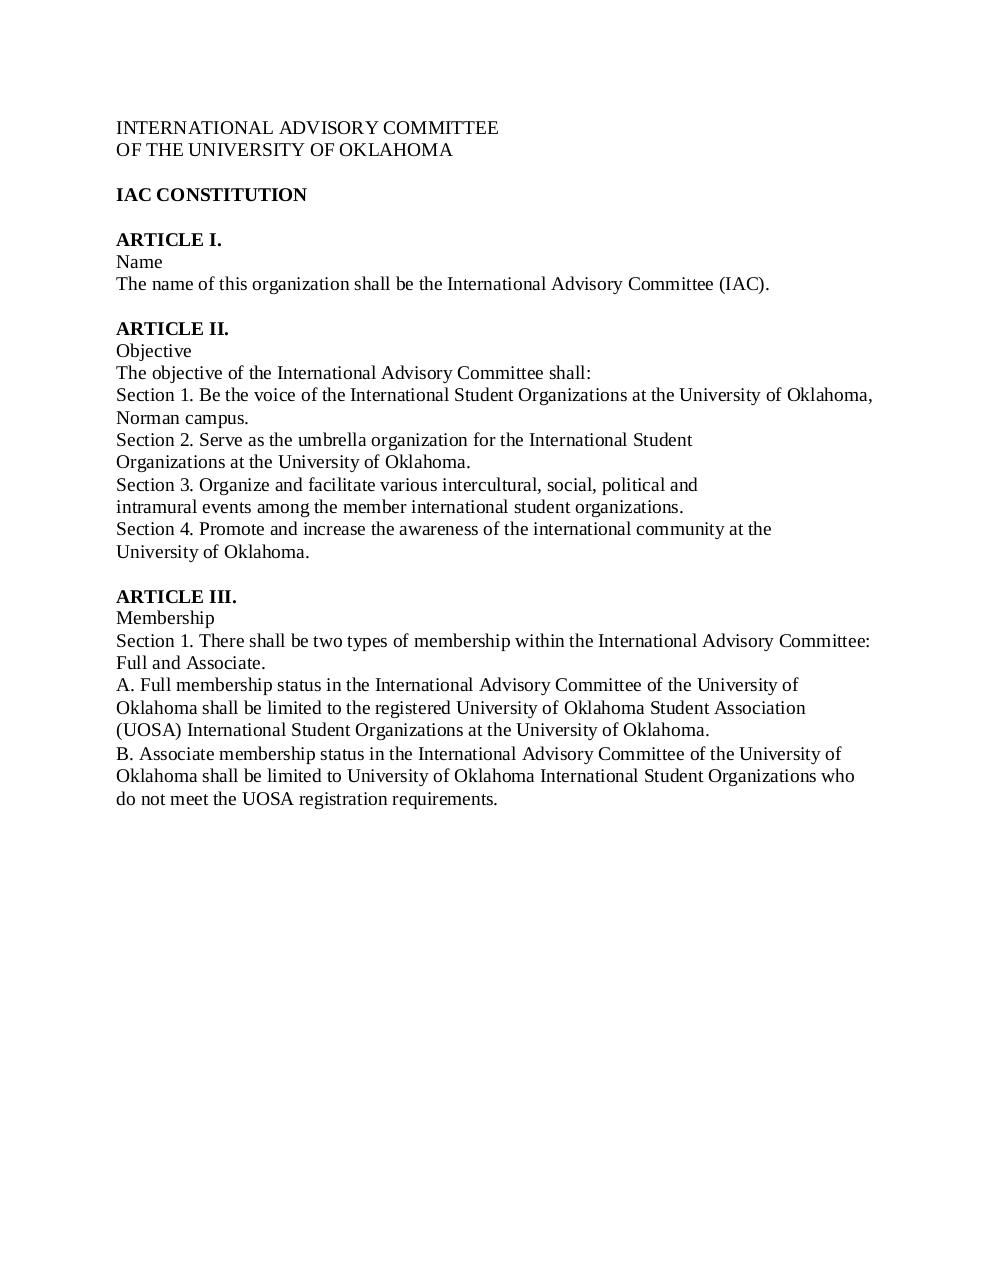 iacconstitution.pdf - page 1/20